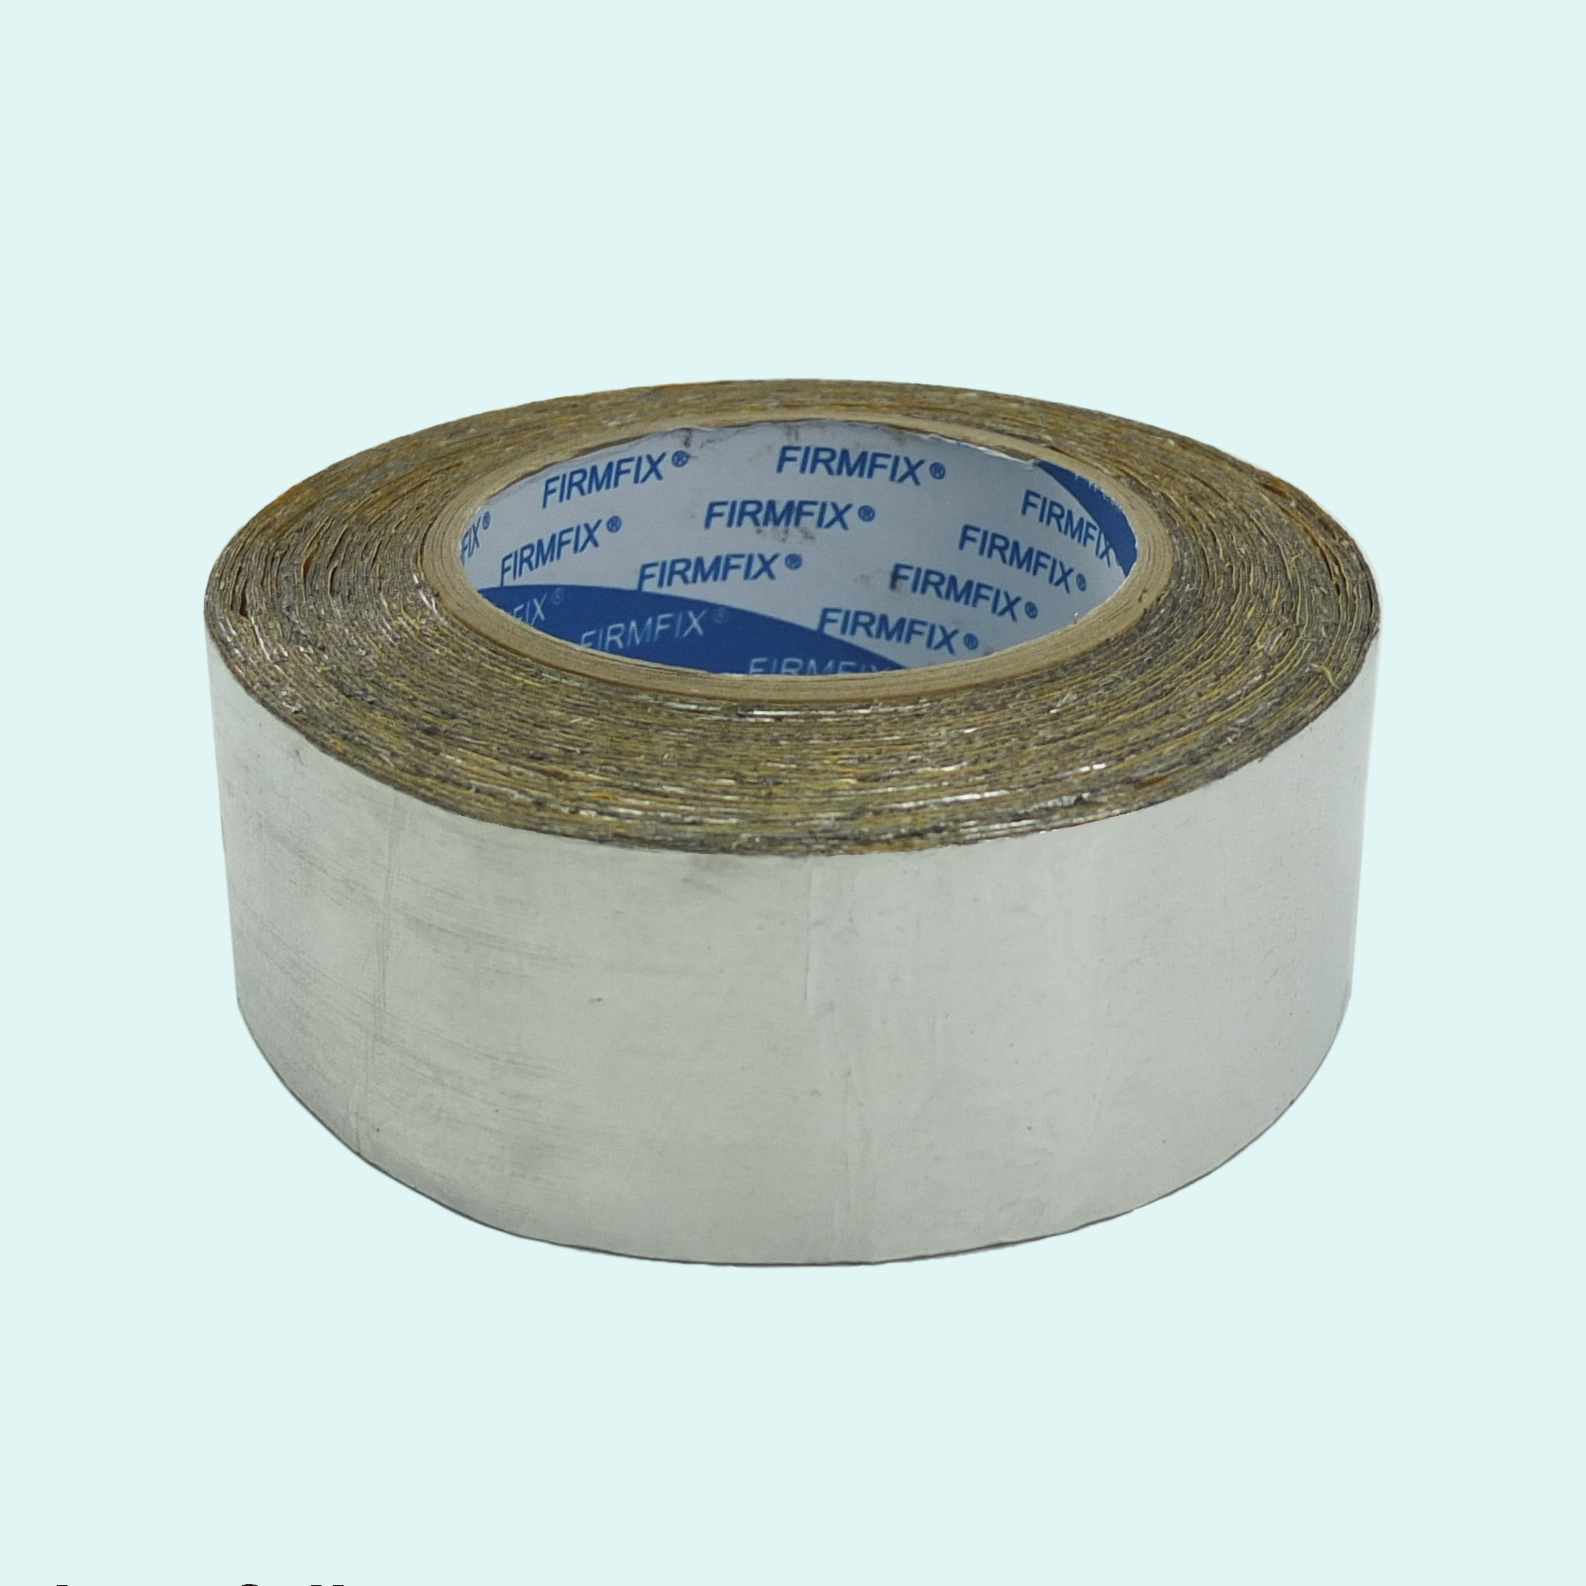 FIRMFIX Reinforced Aluminium Glass Foil Tapes